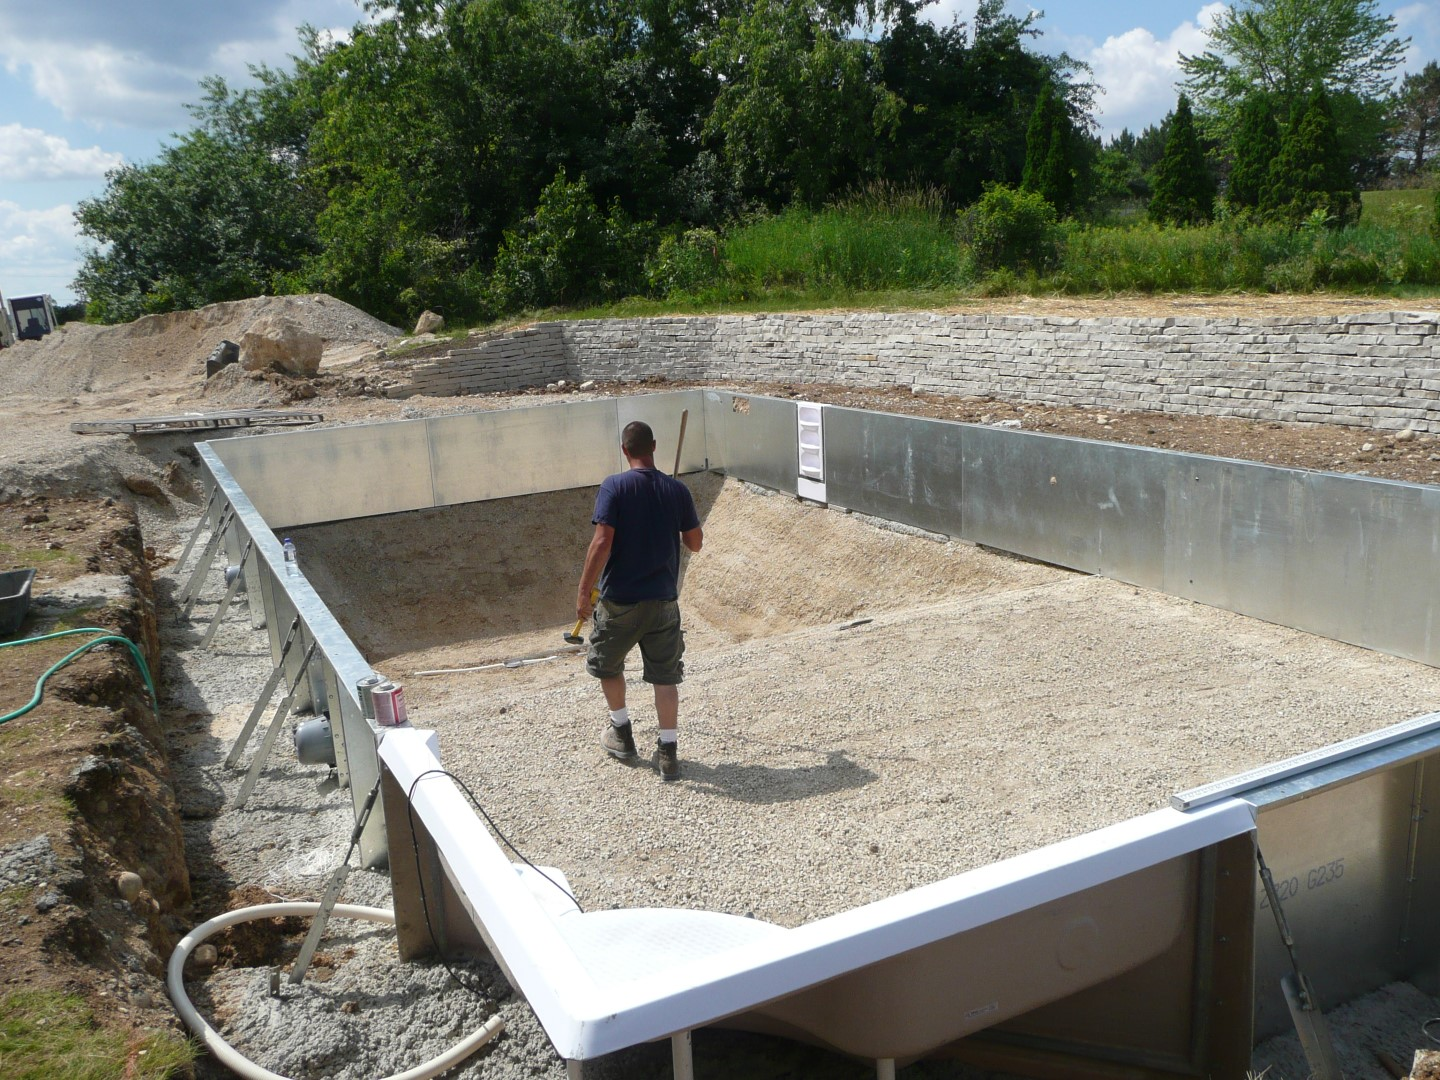 Building an vinyl liner inground swimming pool on rock for Building a swimming pool